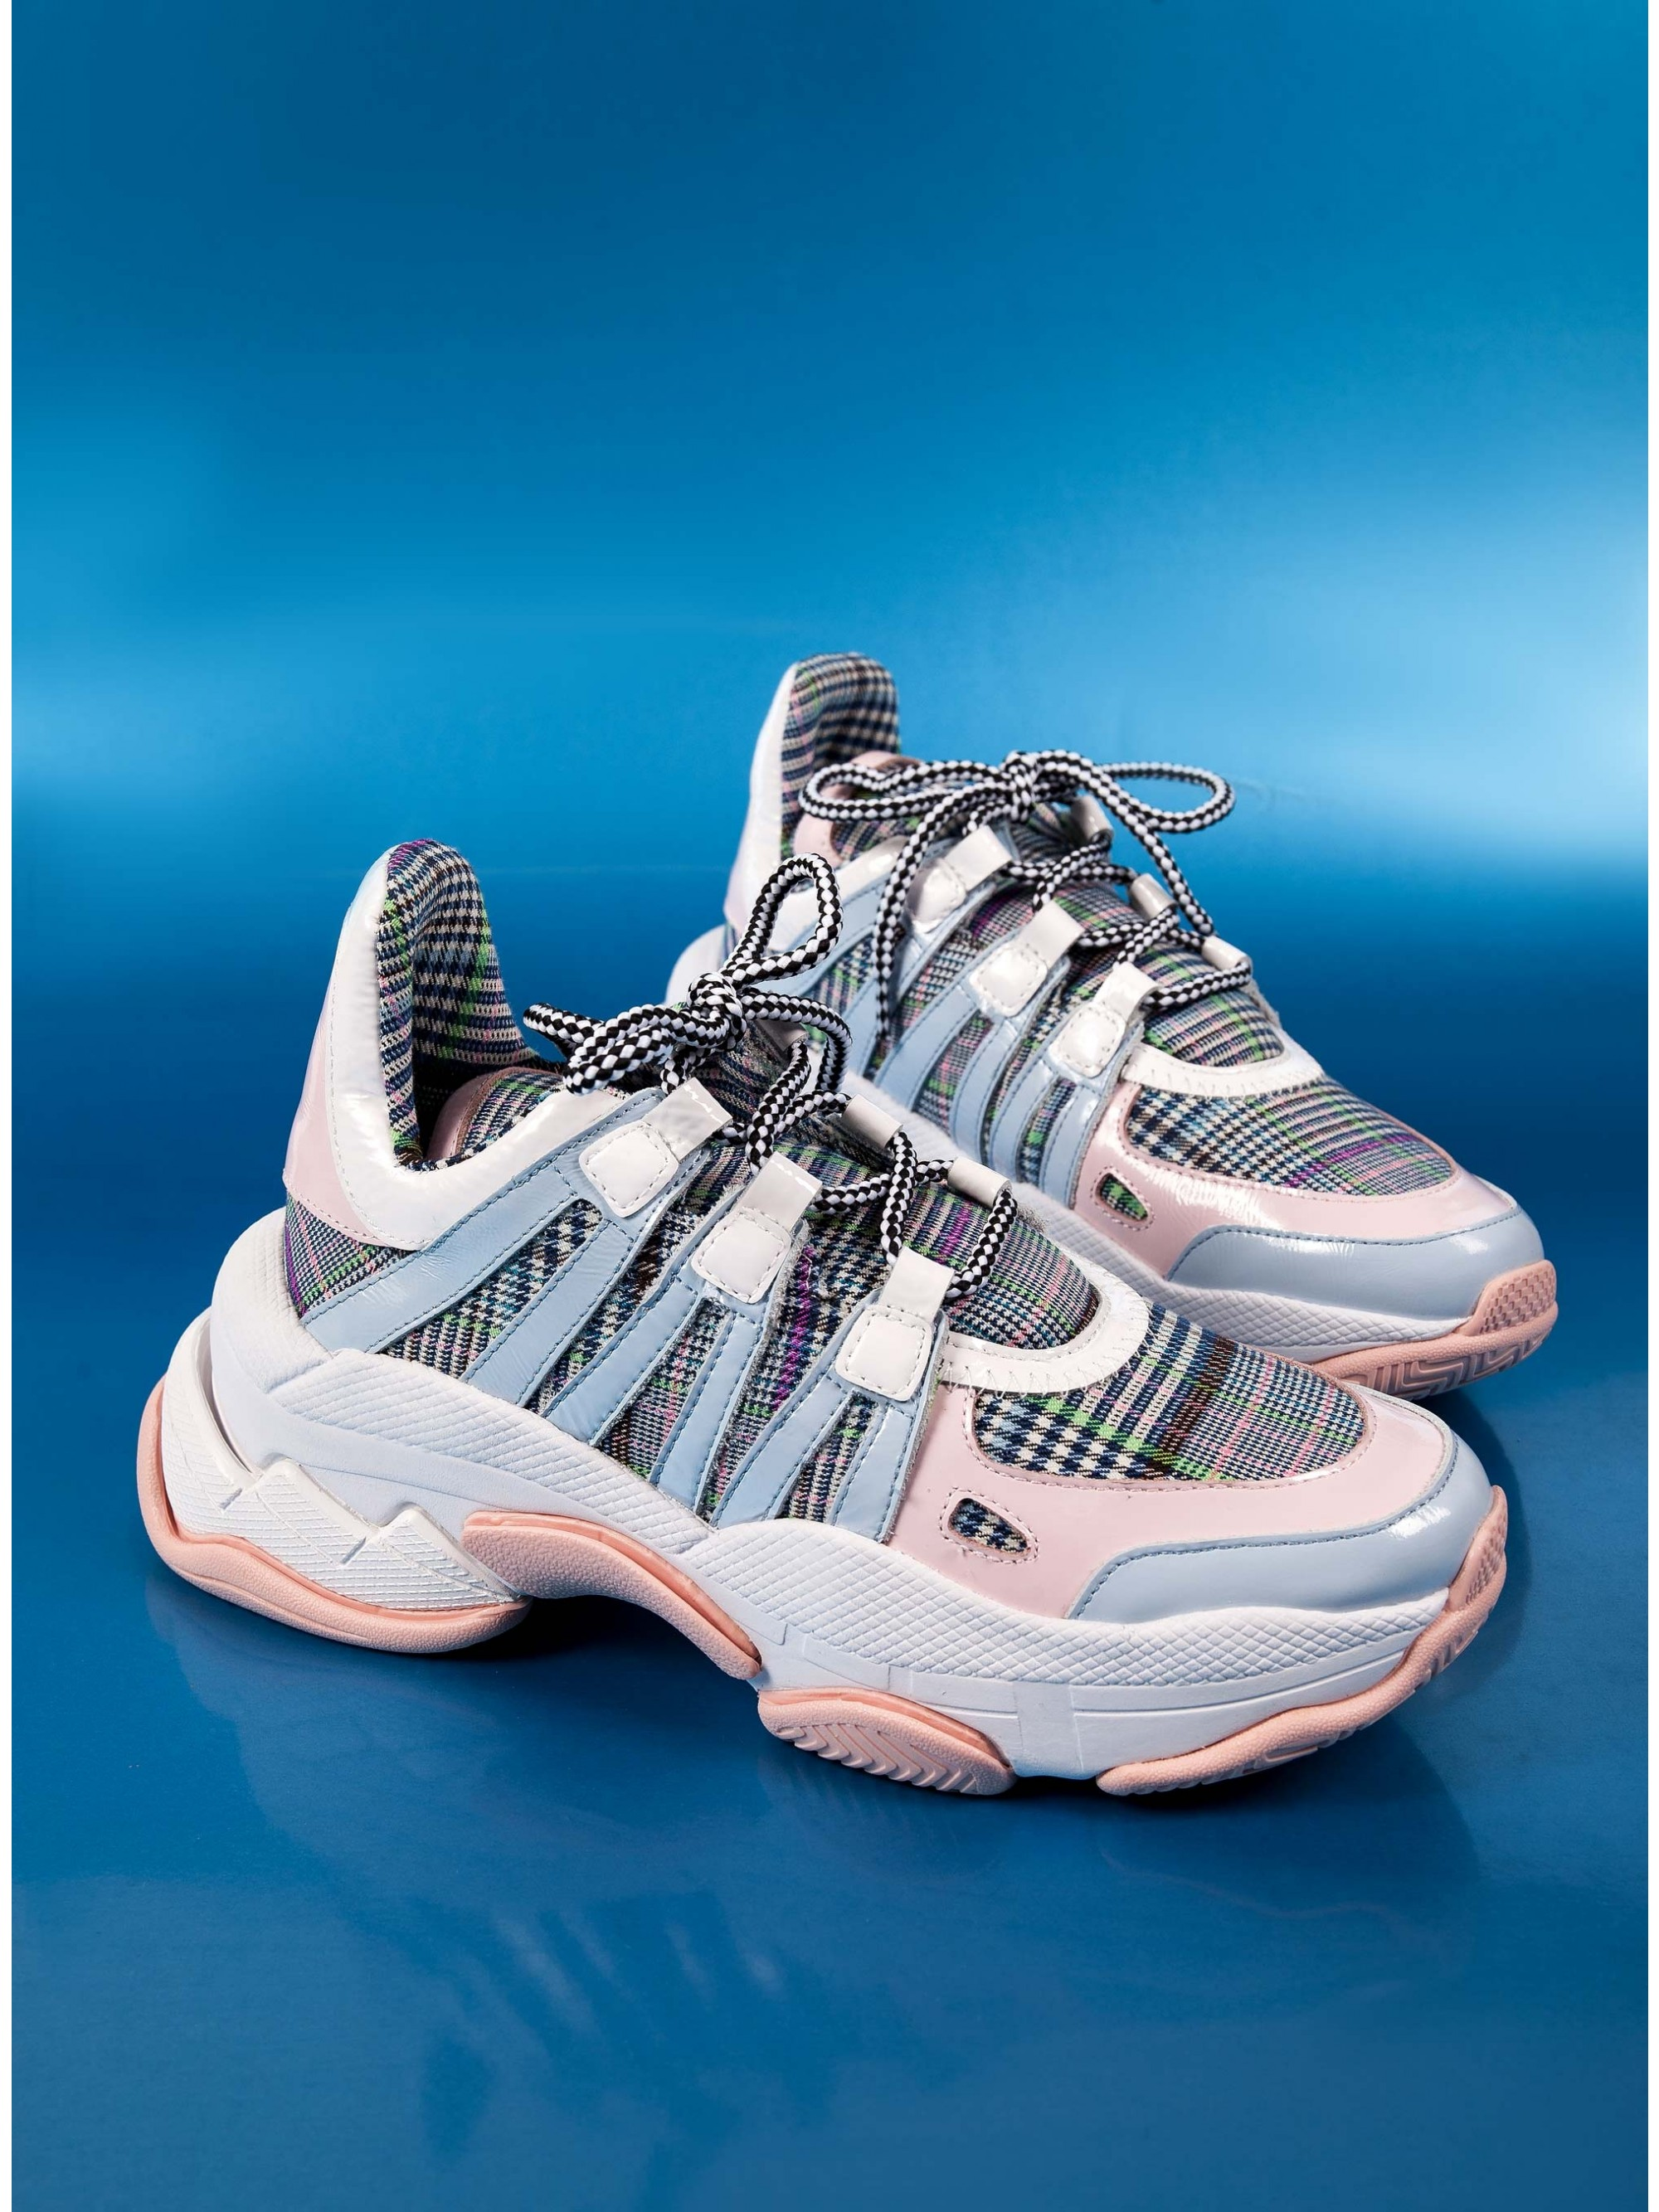 Jeffrey Campbell Sneakers Wi-Fi Fab-Pink